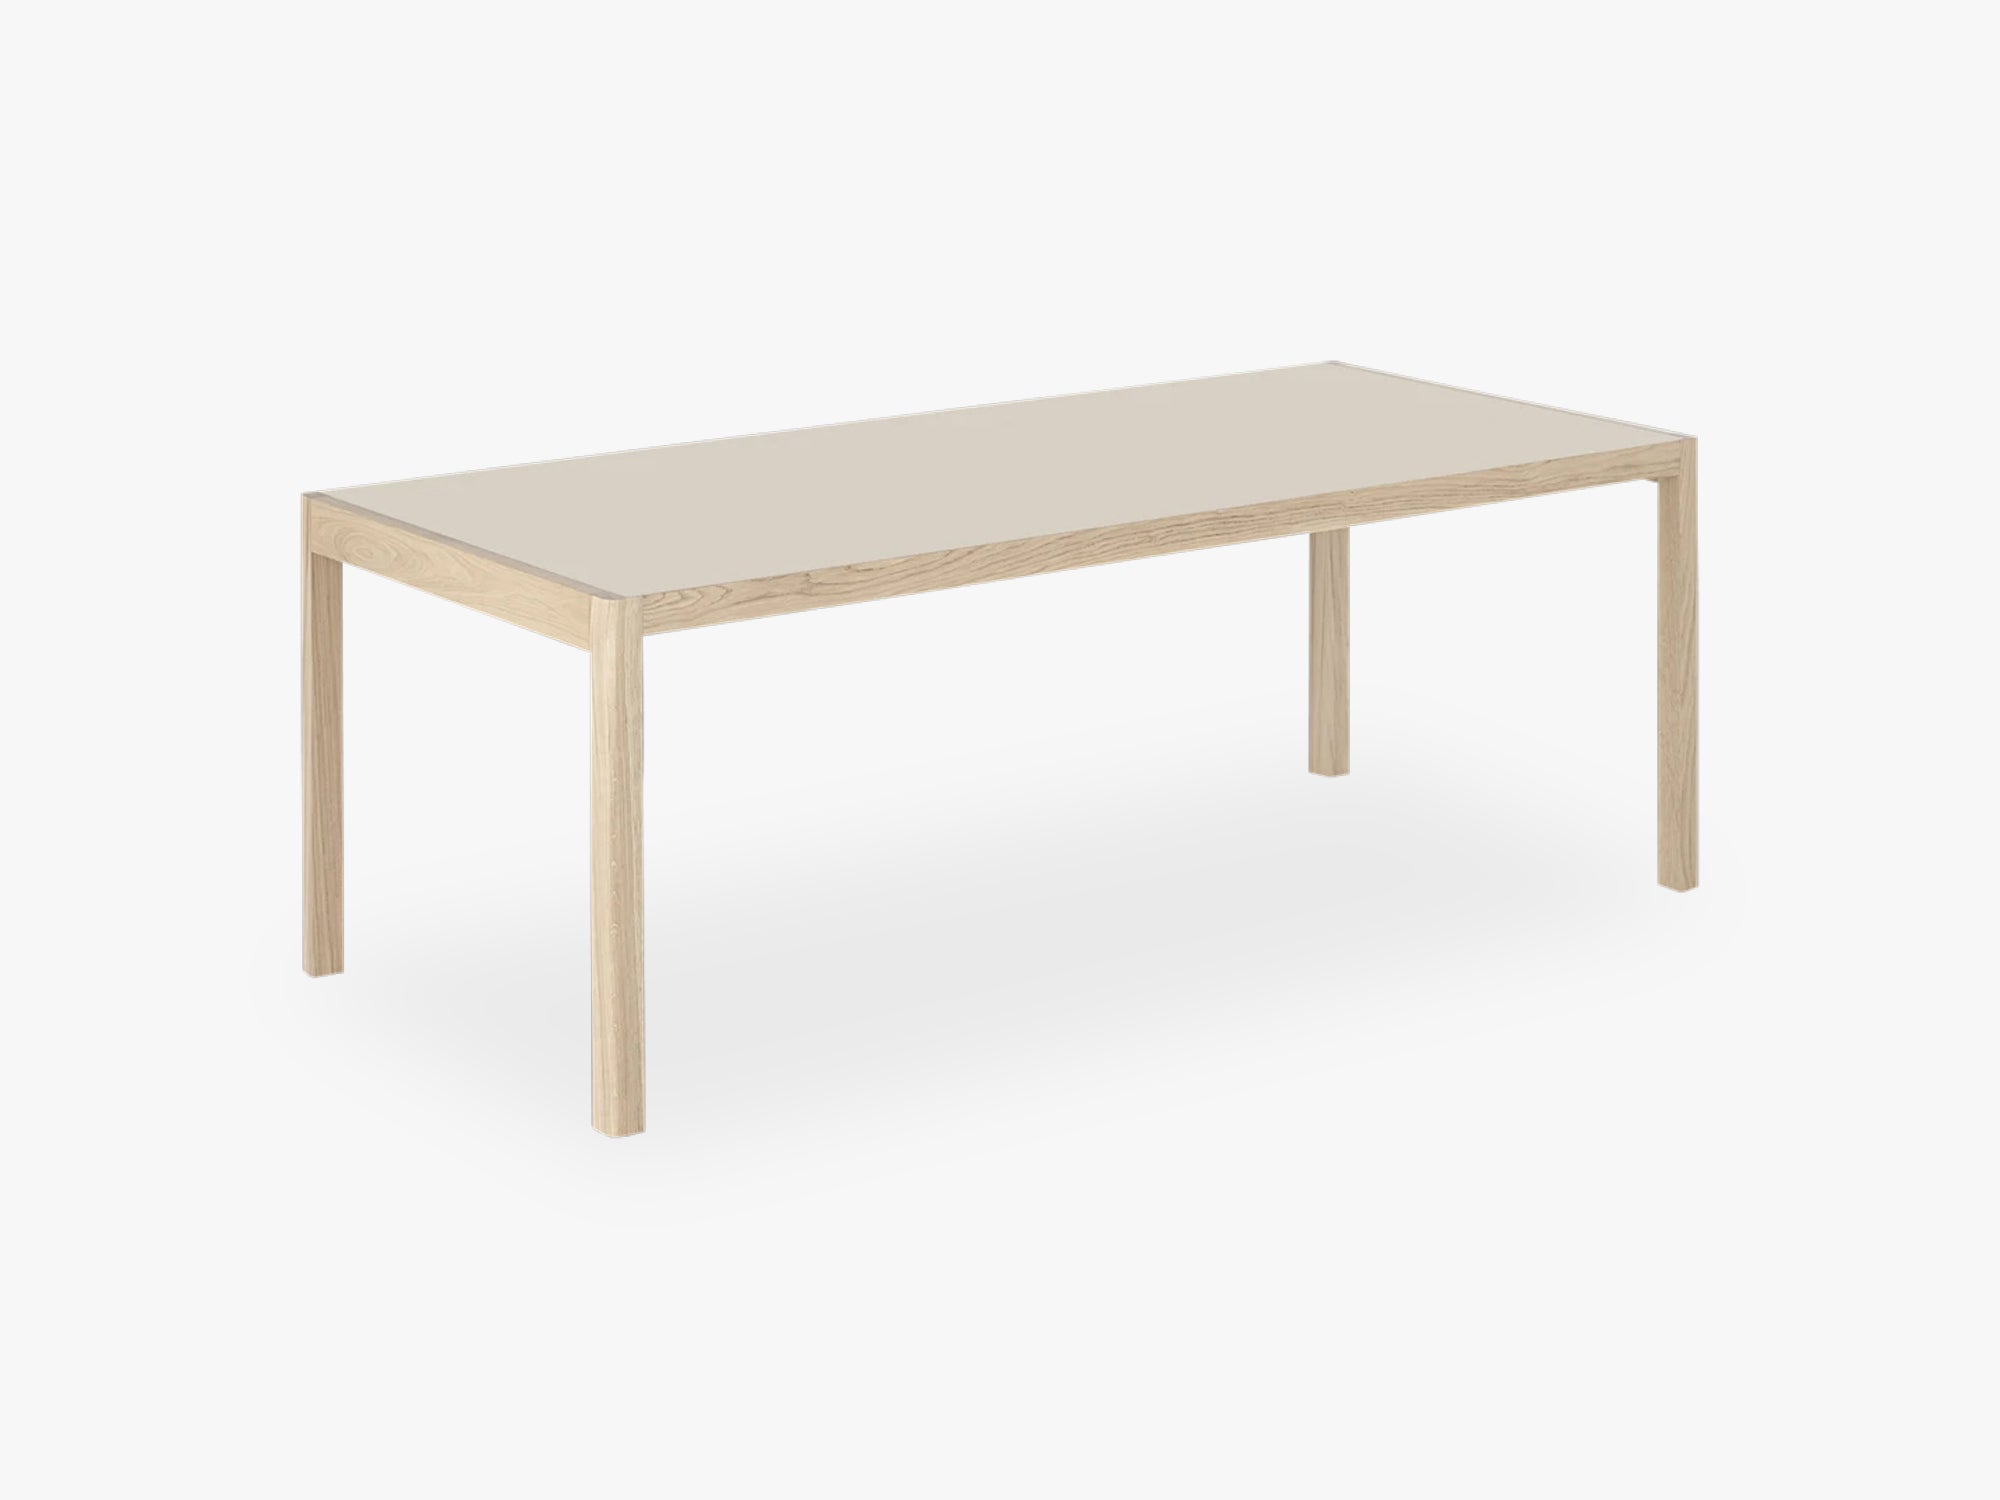 Workshop Table, 200 X 92 Cm, Warm Grey Linoleum / Oak fra Muuto